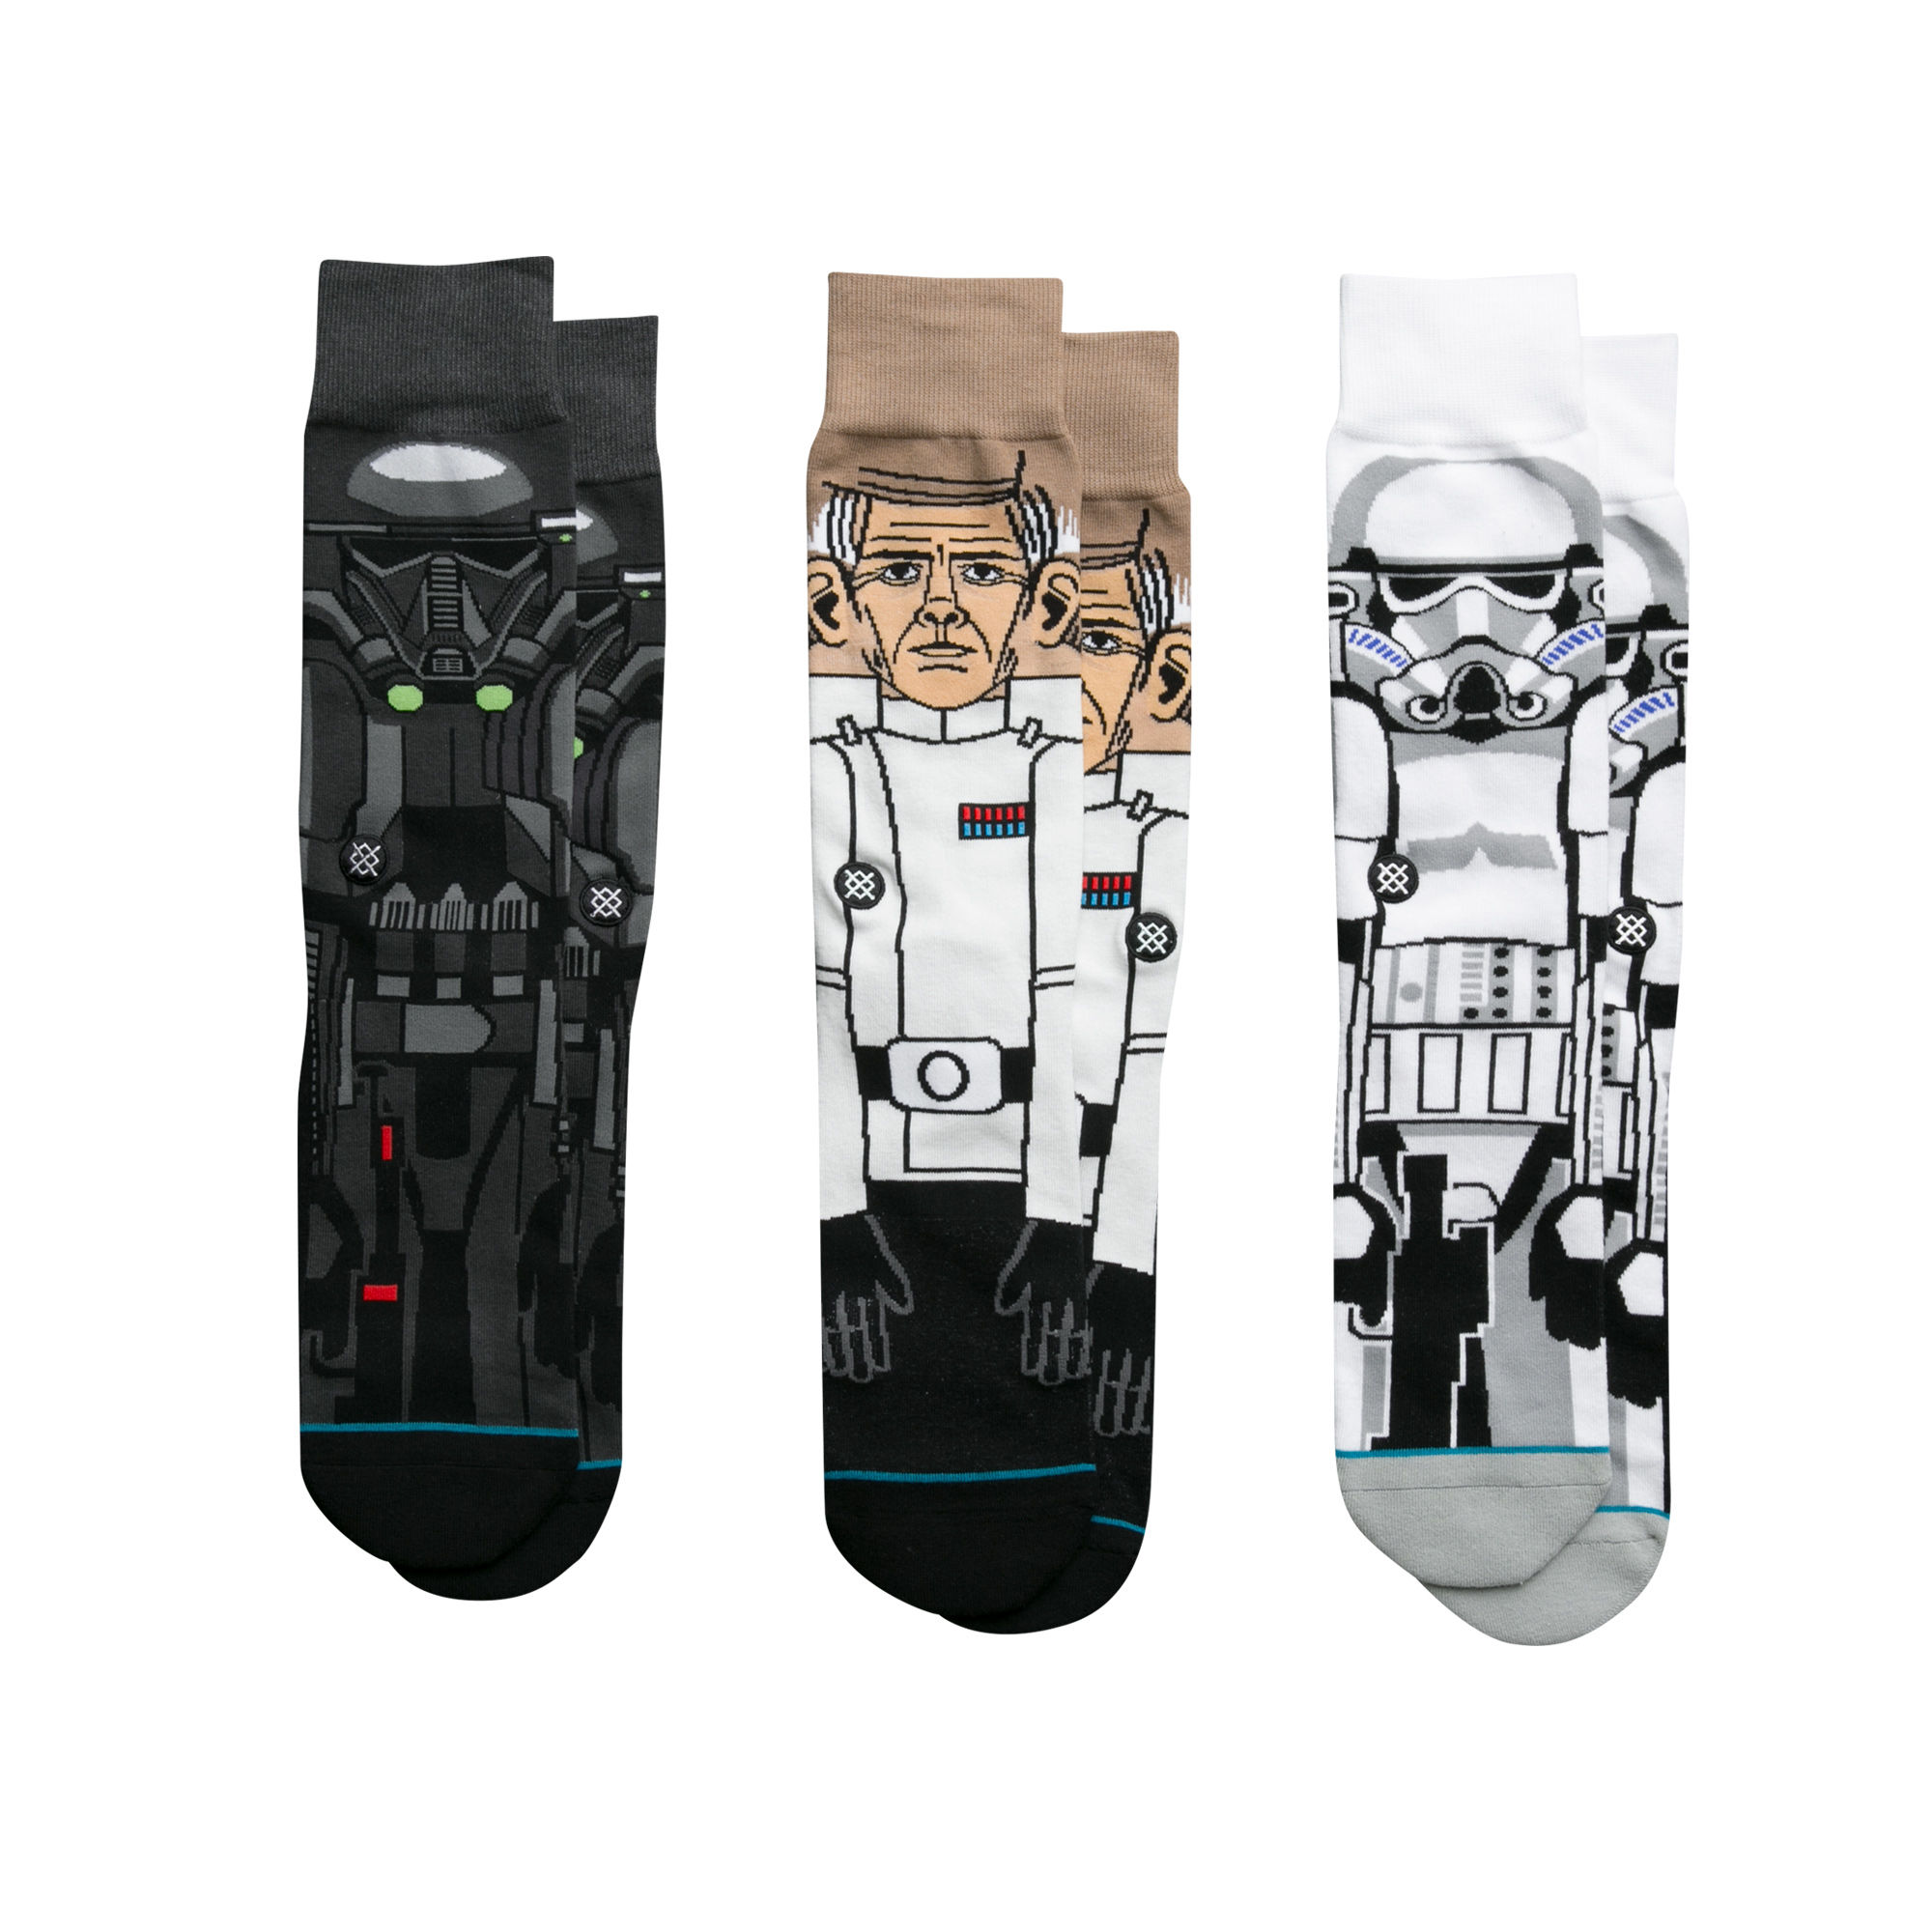 Stance x Star Wars Socks 3 Pack Gift Box Rogue One SIZE L Movie Sox Set